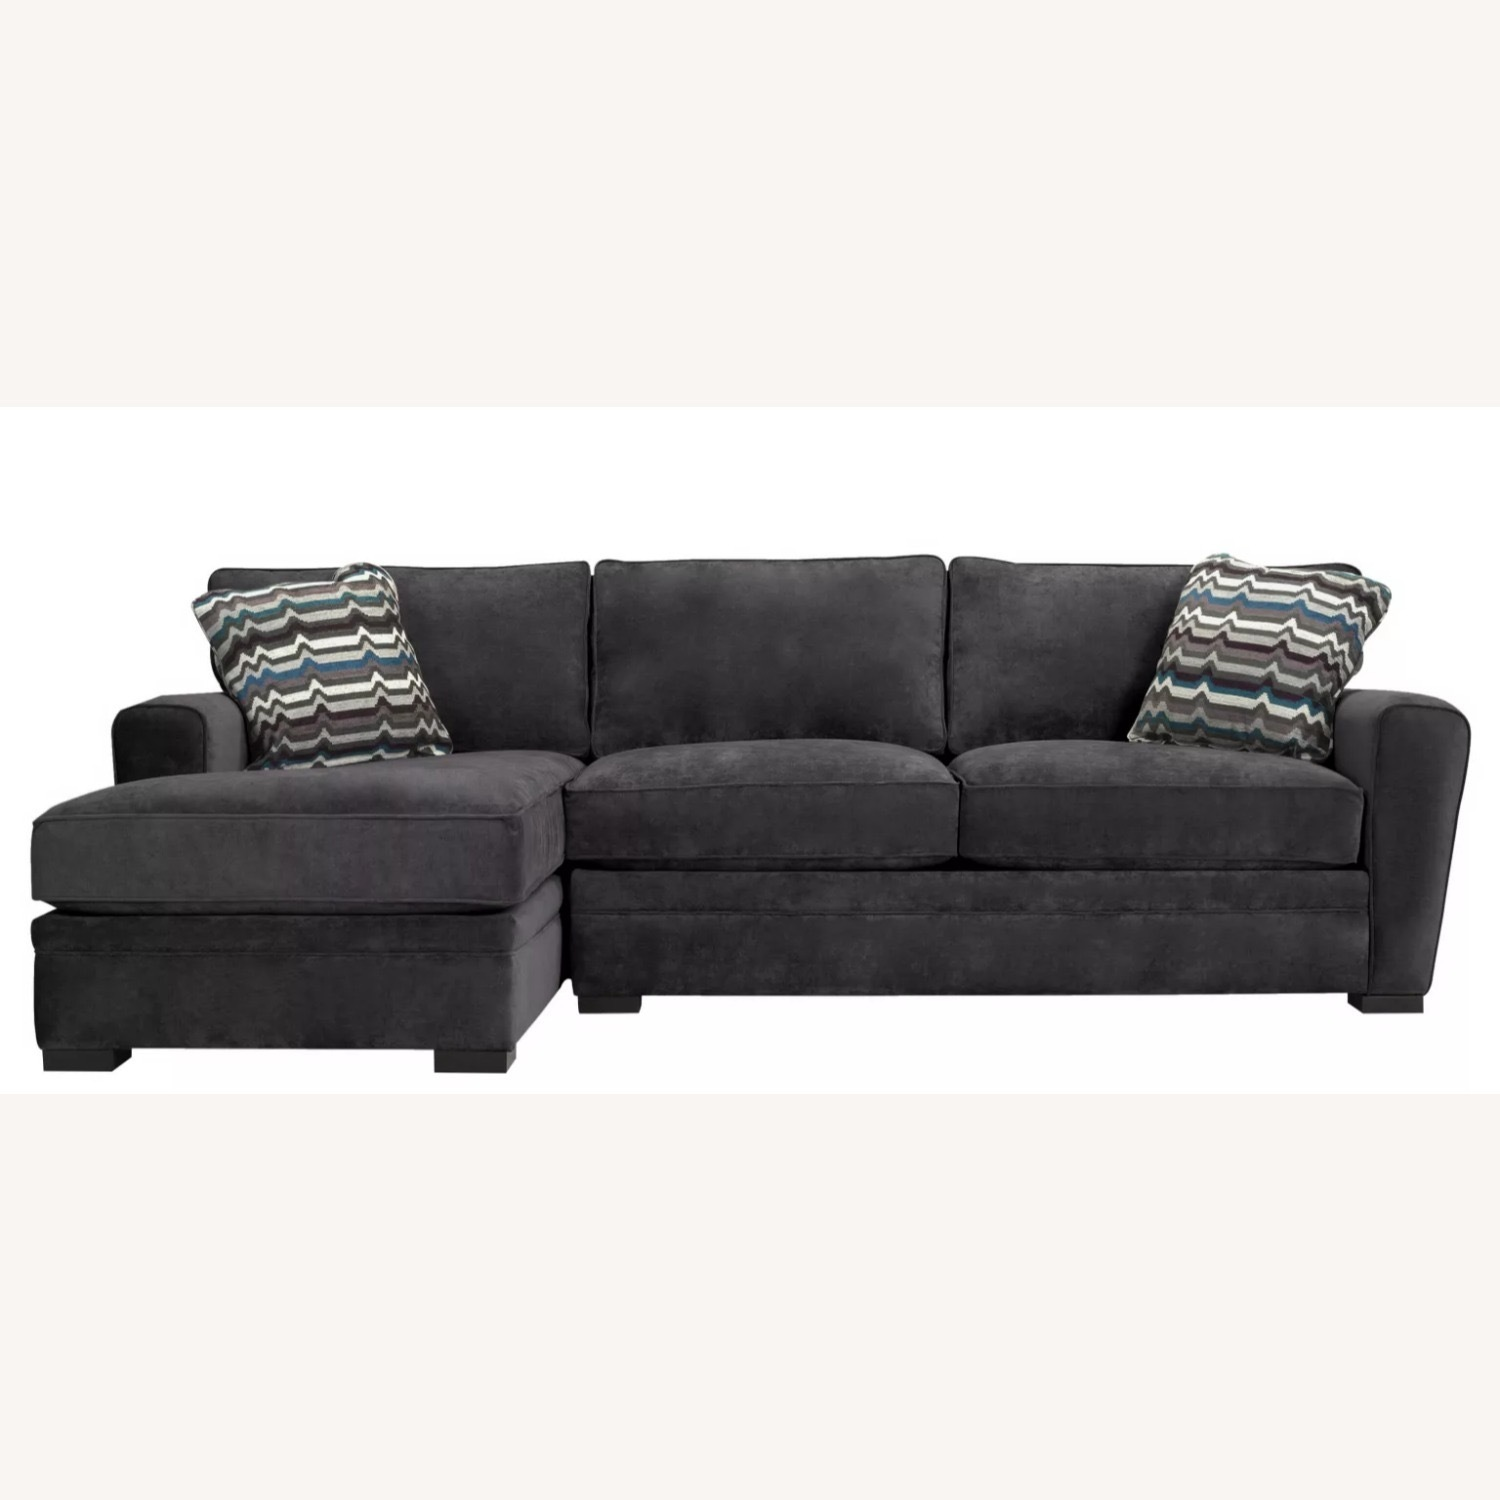 Raymour & Flanigan Dark Gray L Shaped Sectional - image-1